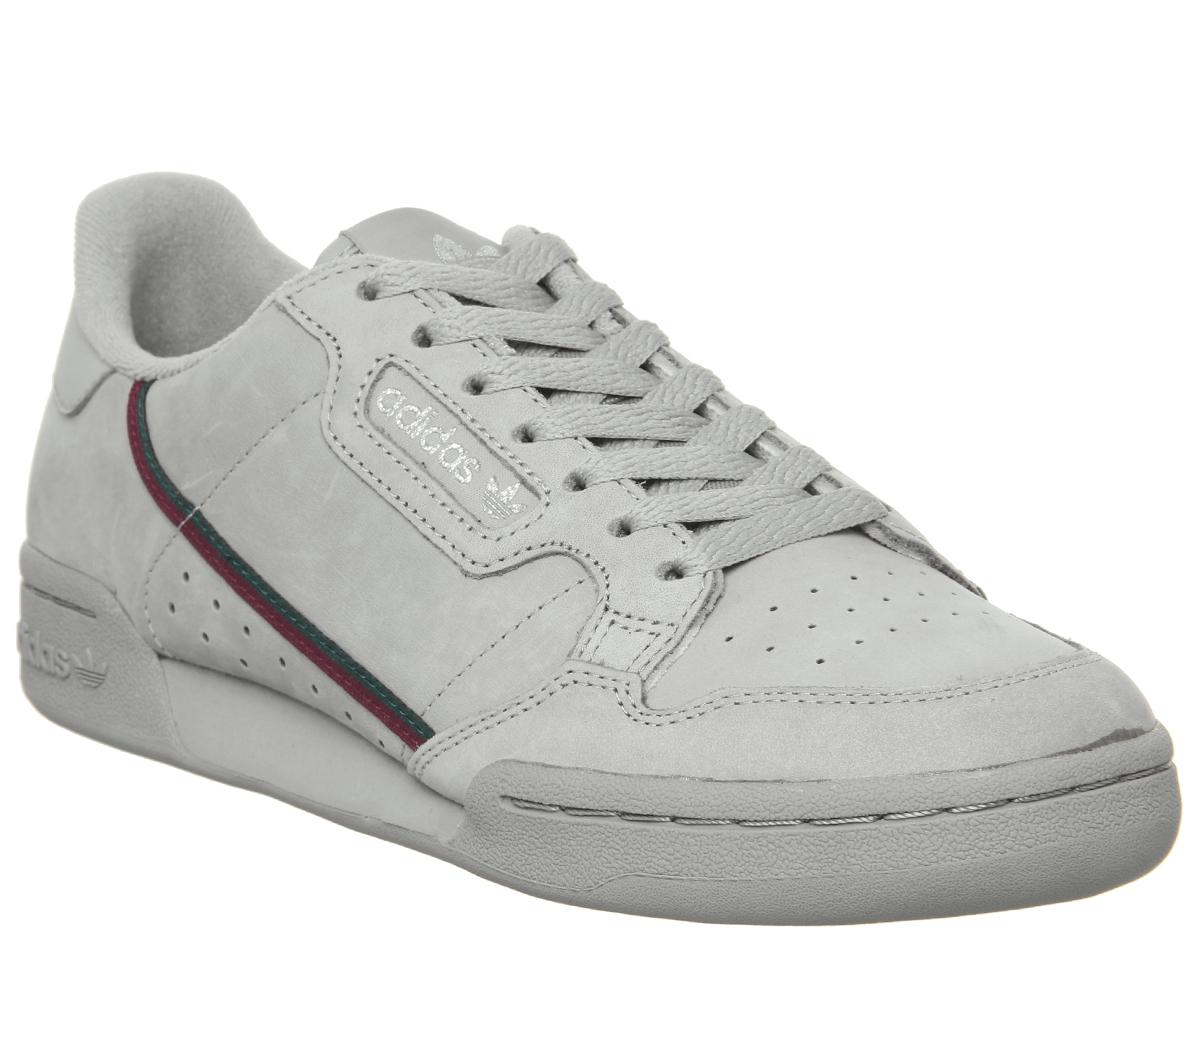 adidas Continental 80's Trainers Light